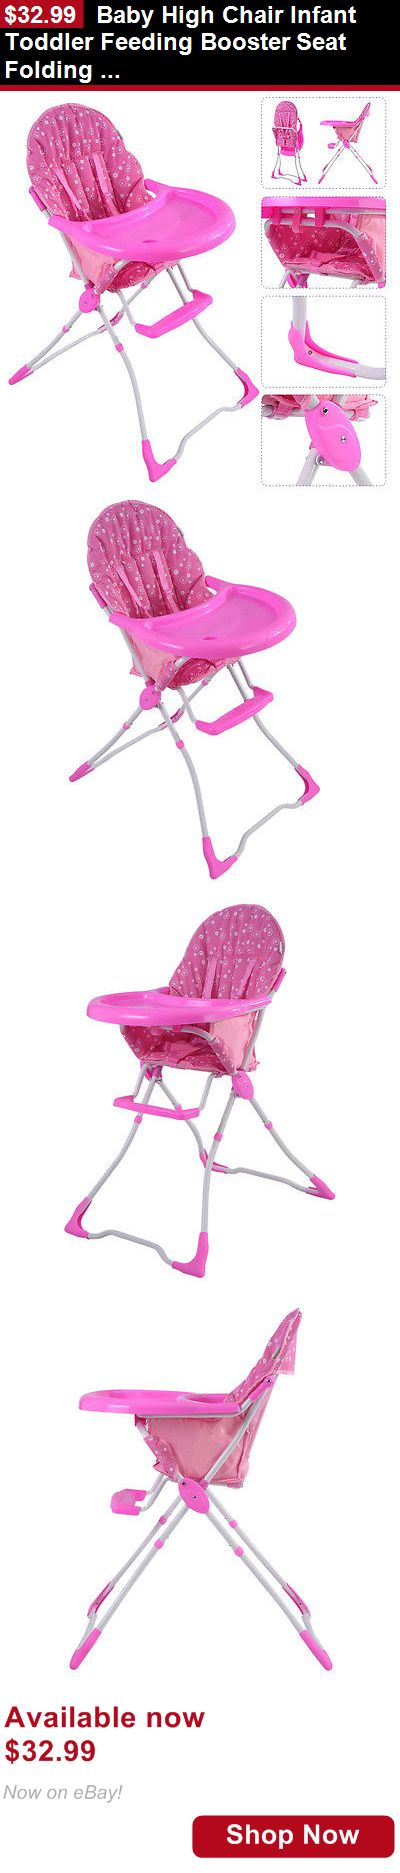 Baby High Chairs: Baby High Chair Infant Toddler Feeding Booster Seat Folding Safety Portable Pink BUY IT NOW ONLY: $32.99